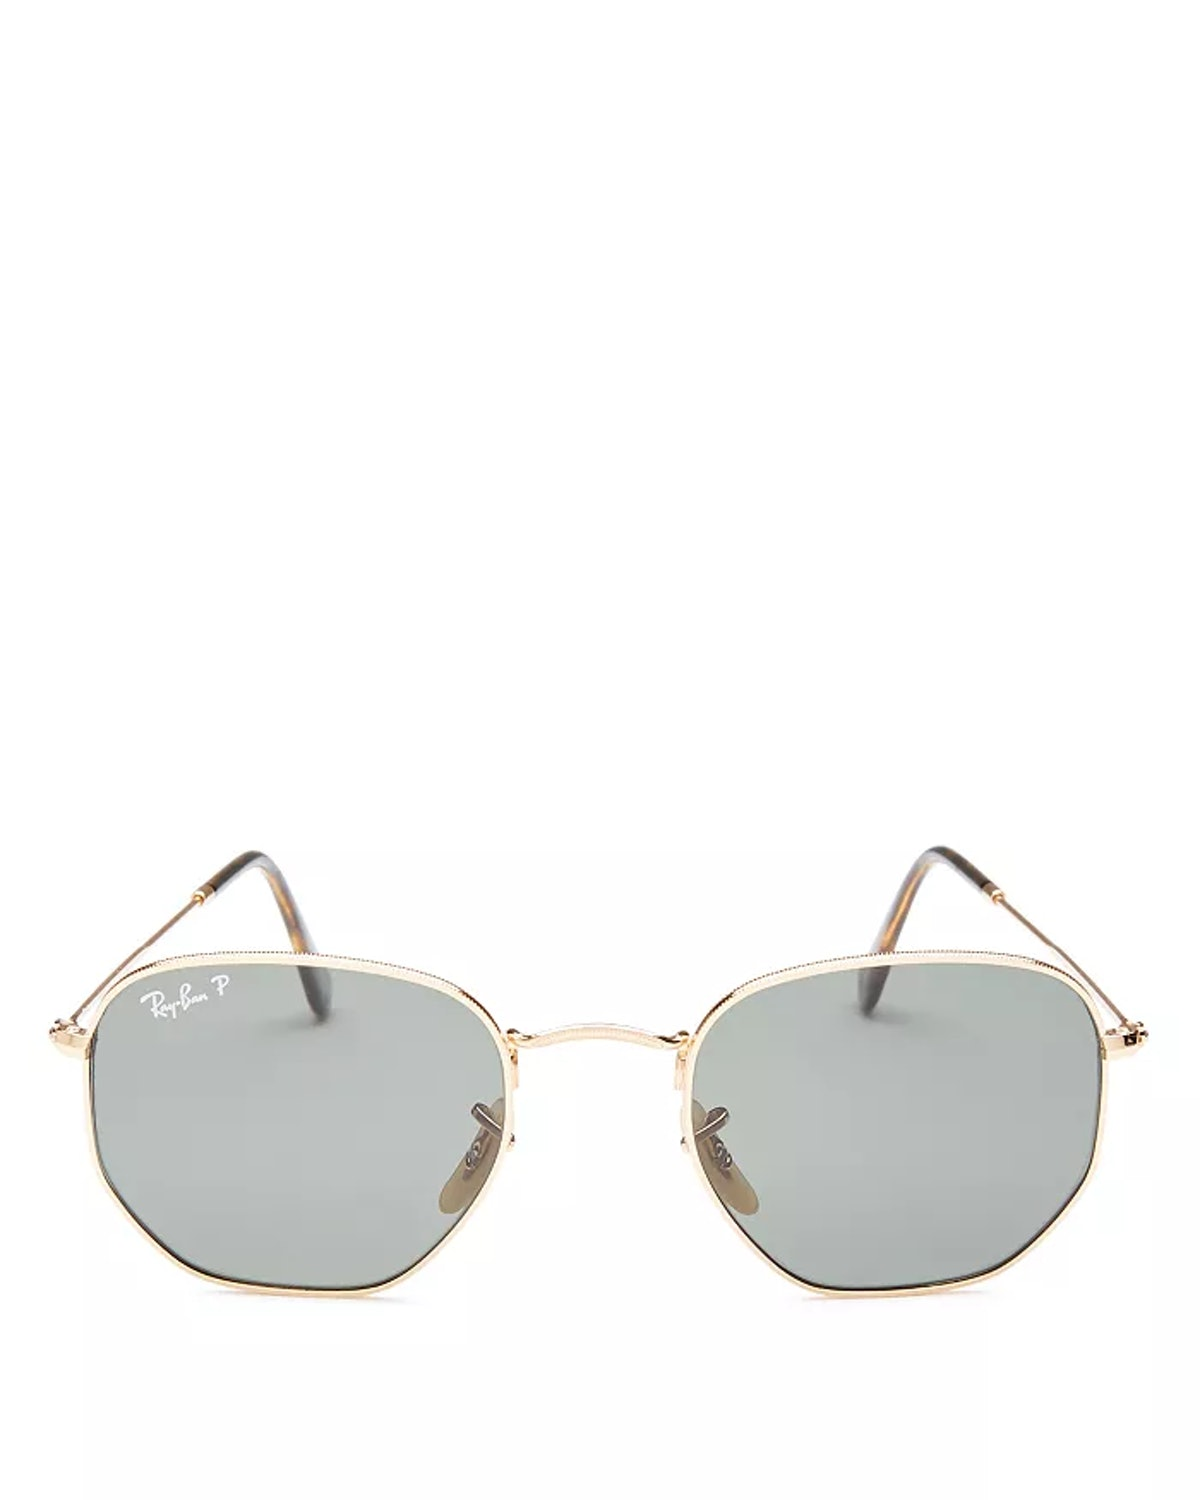 Unisex Icons Polarized Hexagonal Sunglasses from Ray-Ban, available to shop on Bloomingdale's.